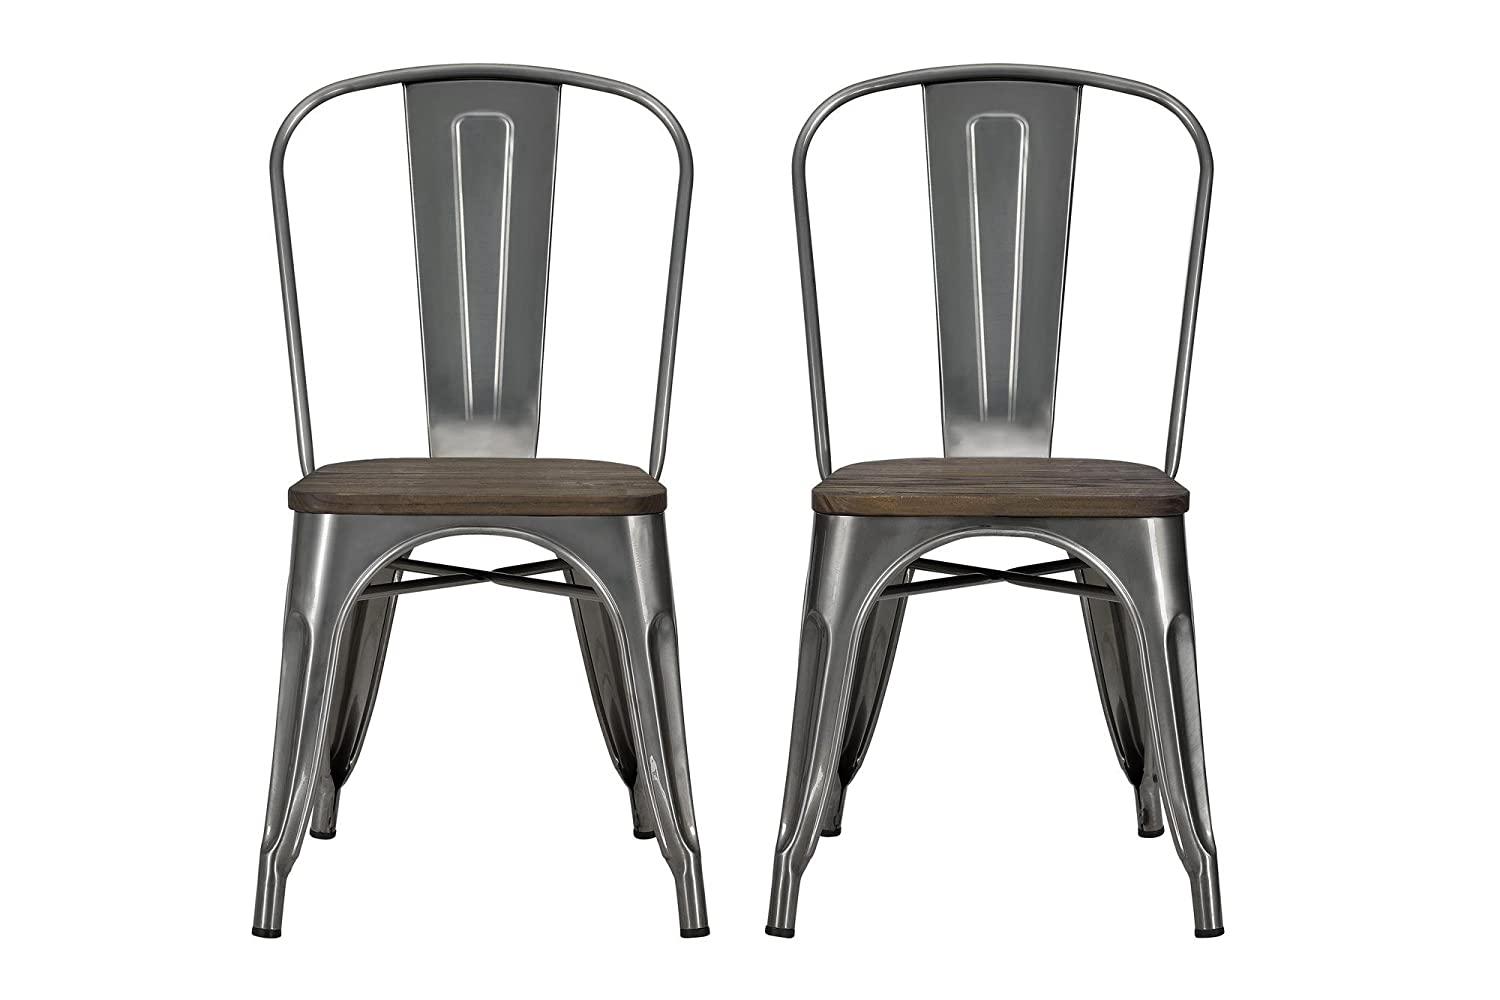 Amazon.com: DHP Fusion Metal Dining Chair with Wood Seat, Set of two,  Antique Gunmetal: Kitchen & Dining - Amazon.com: DHP Fusion Metal Dining Chair With Wood Seat, Set Of Two